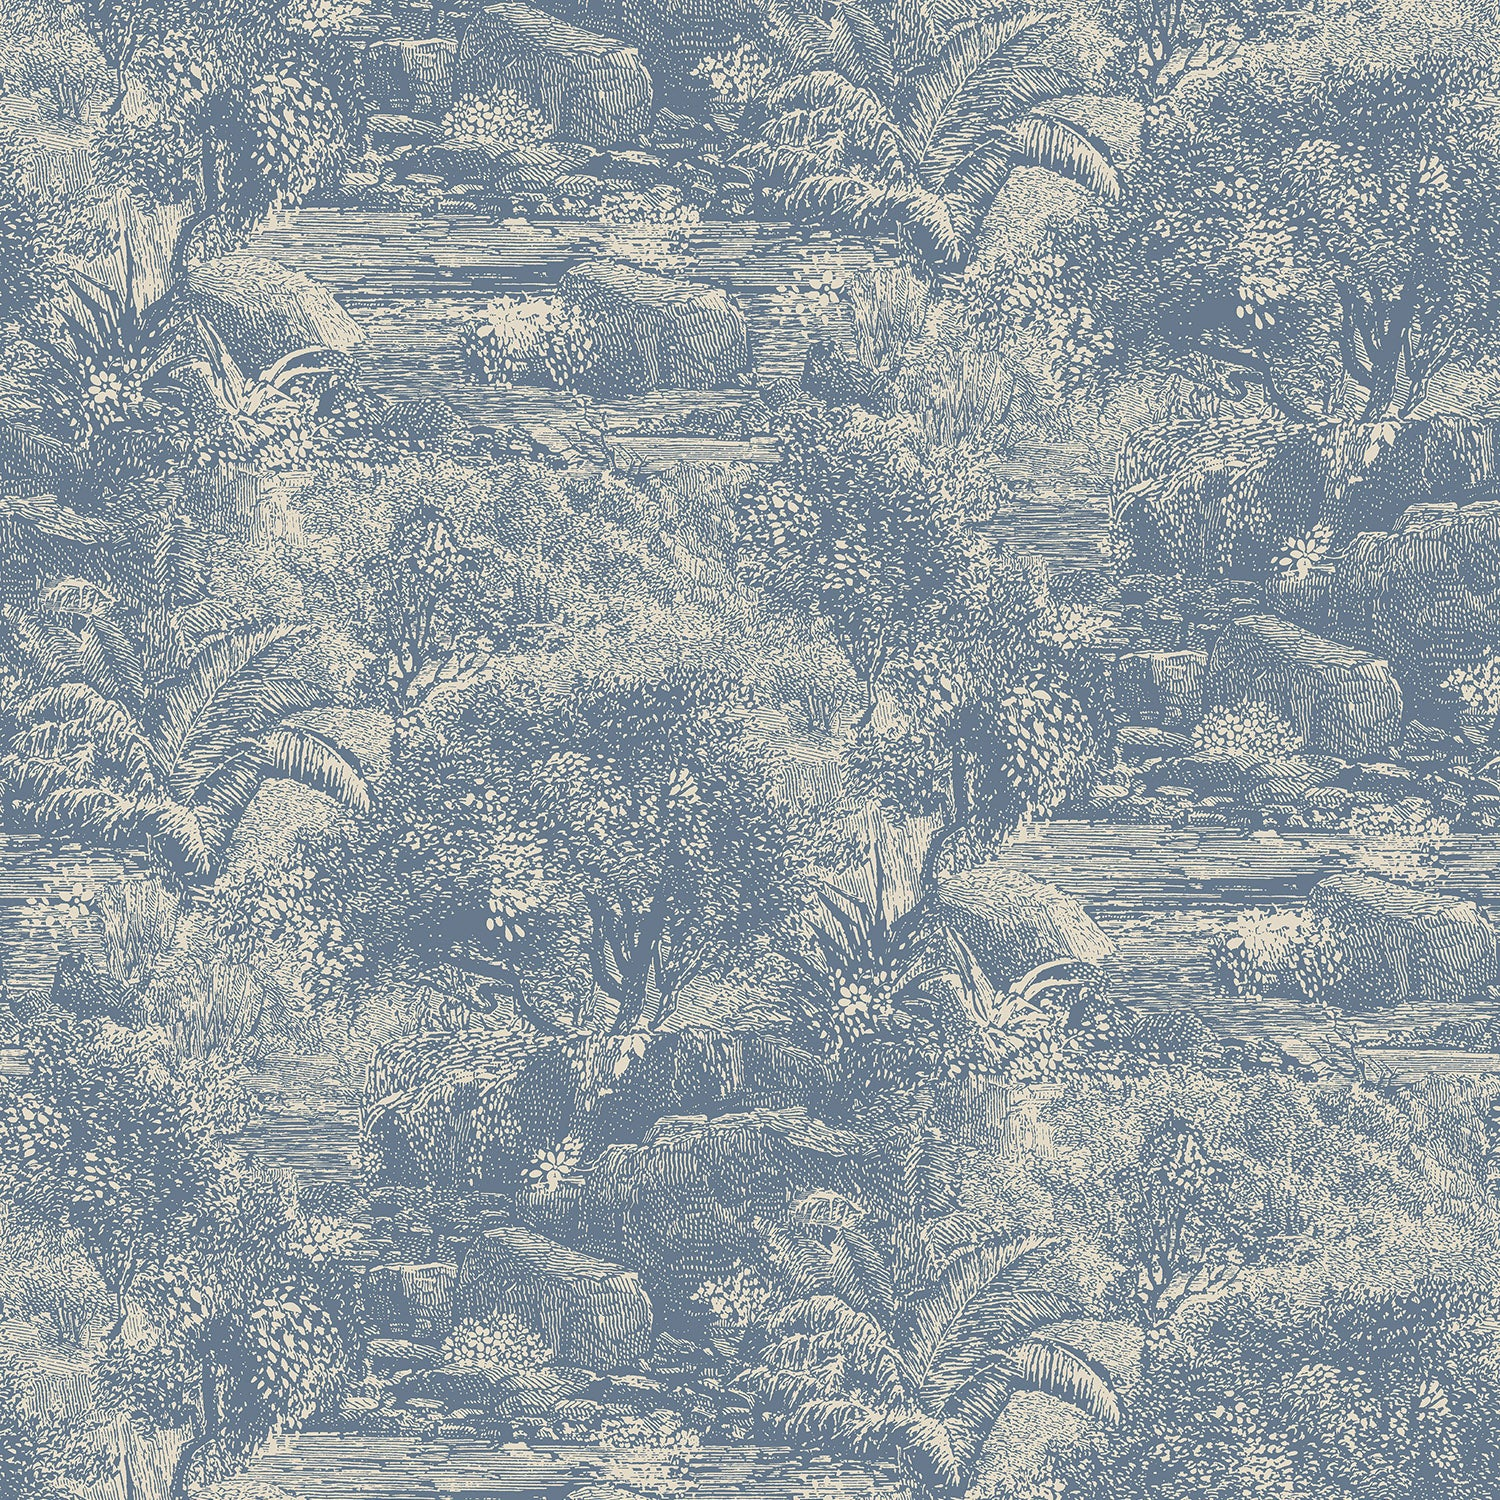 Island Paradise wallpaper for walls from Tango collection.